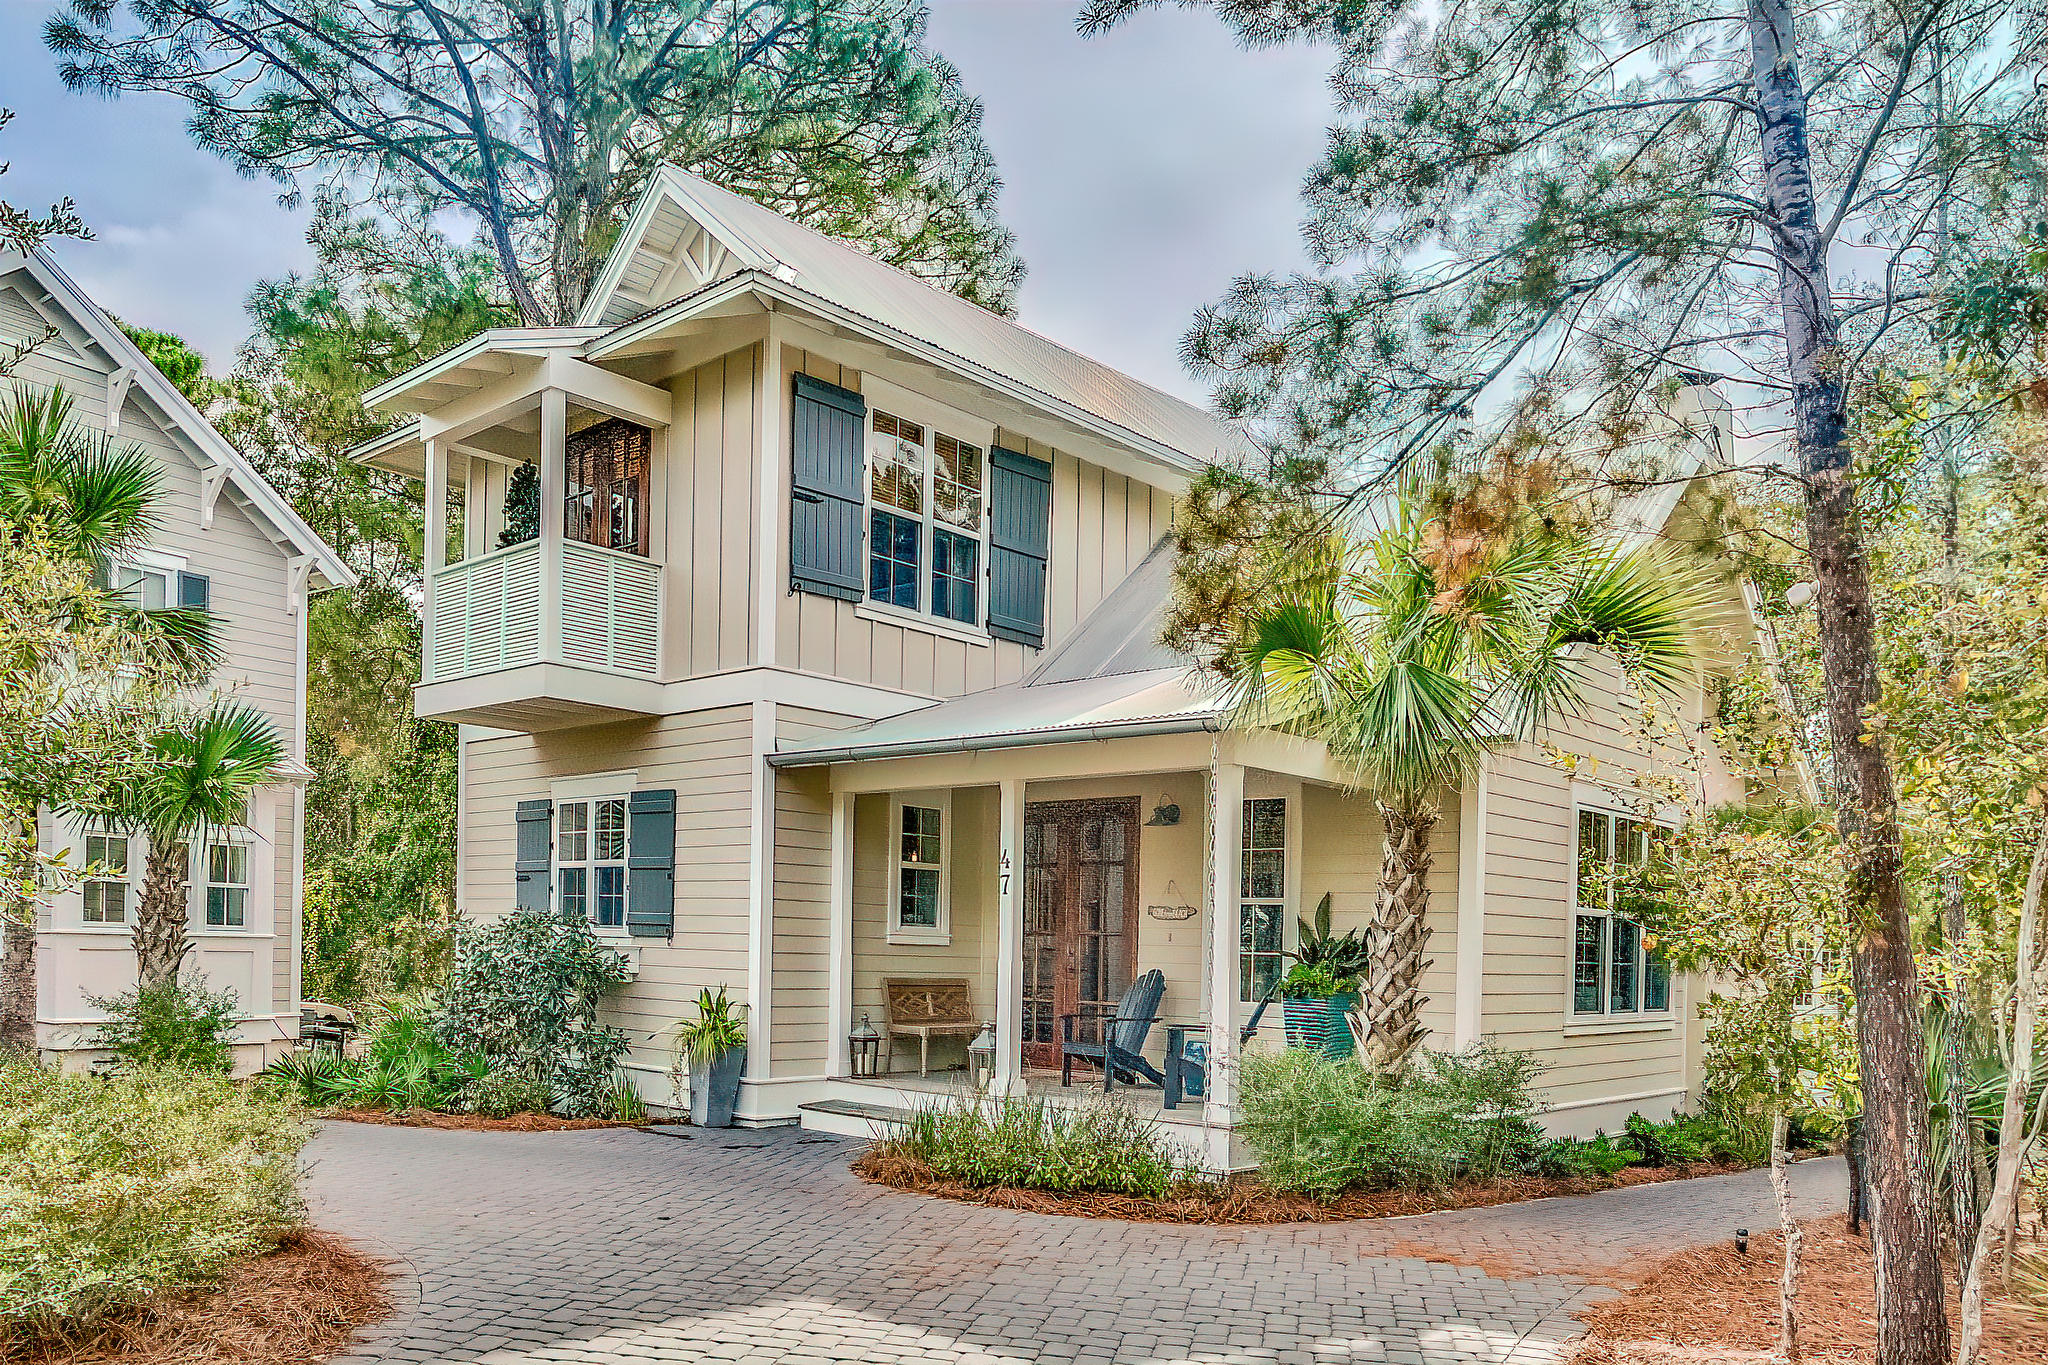 Located in the Hammocks of Seagrove between Watercolor and Seagrove, this 3 bedroom, 4 bath, custom